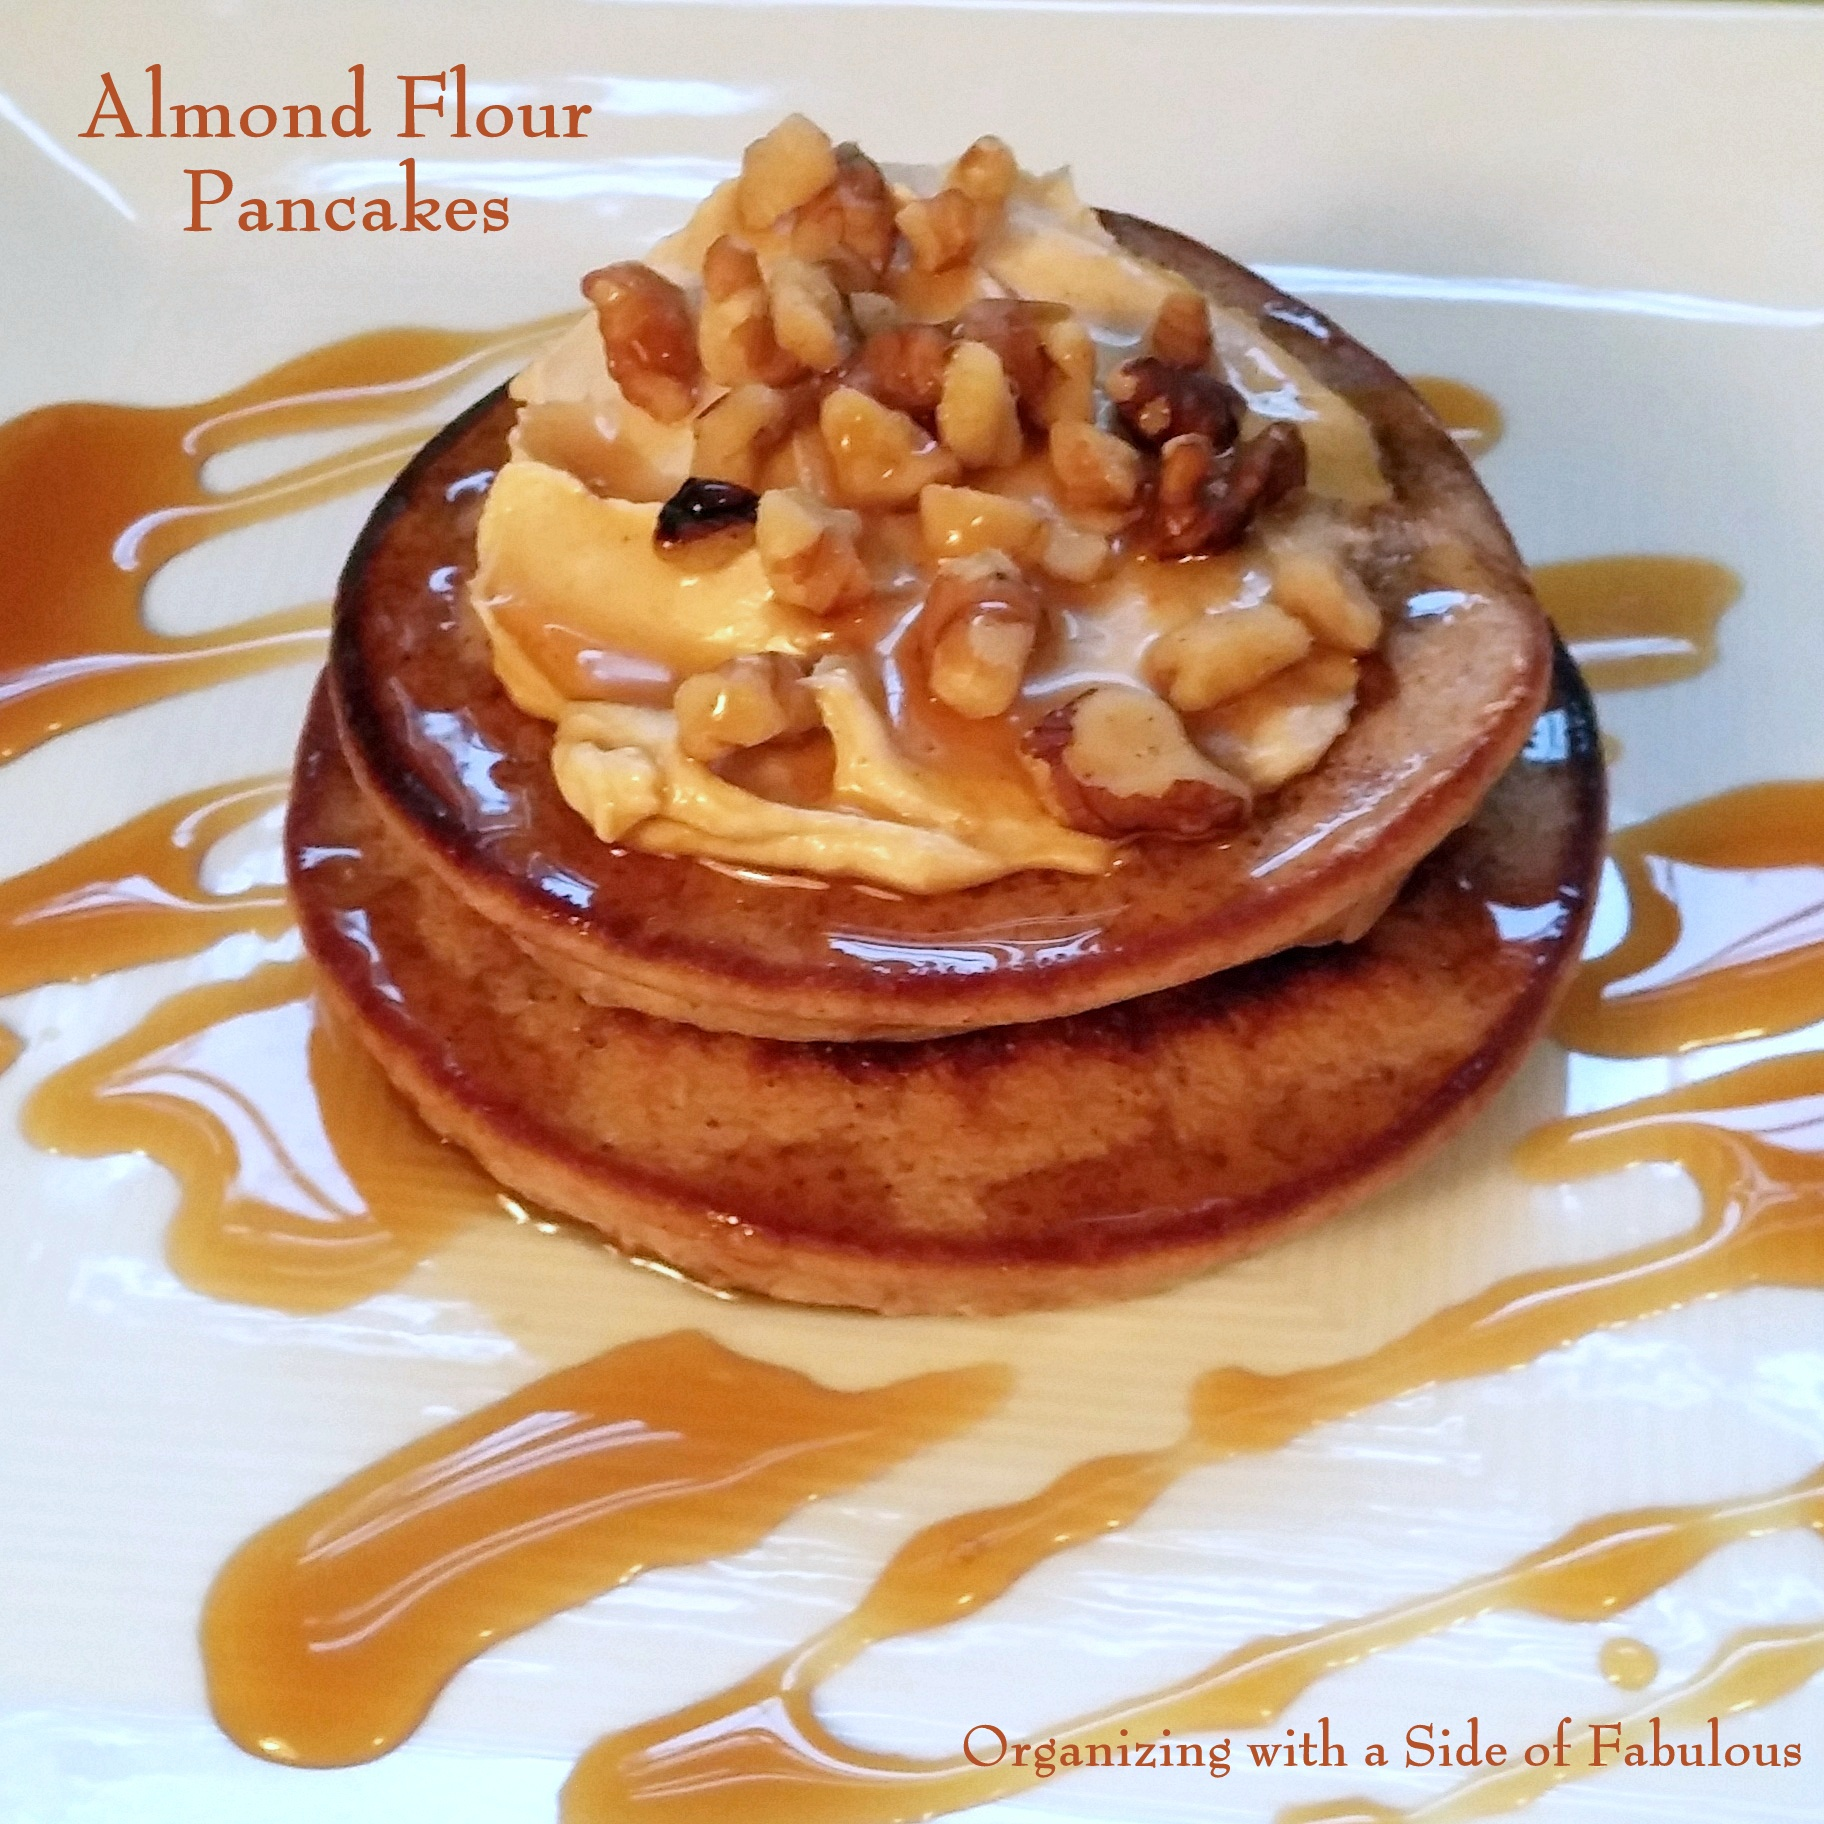 Almond Flour Pancakes - Organizing with a Side of Fabulous